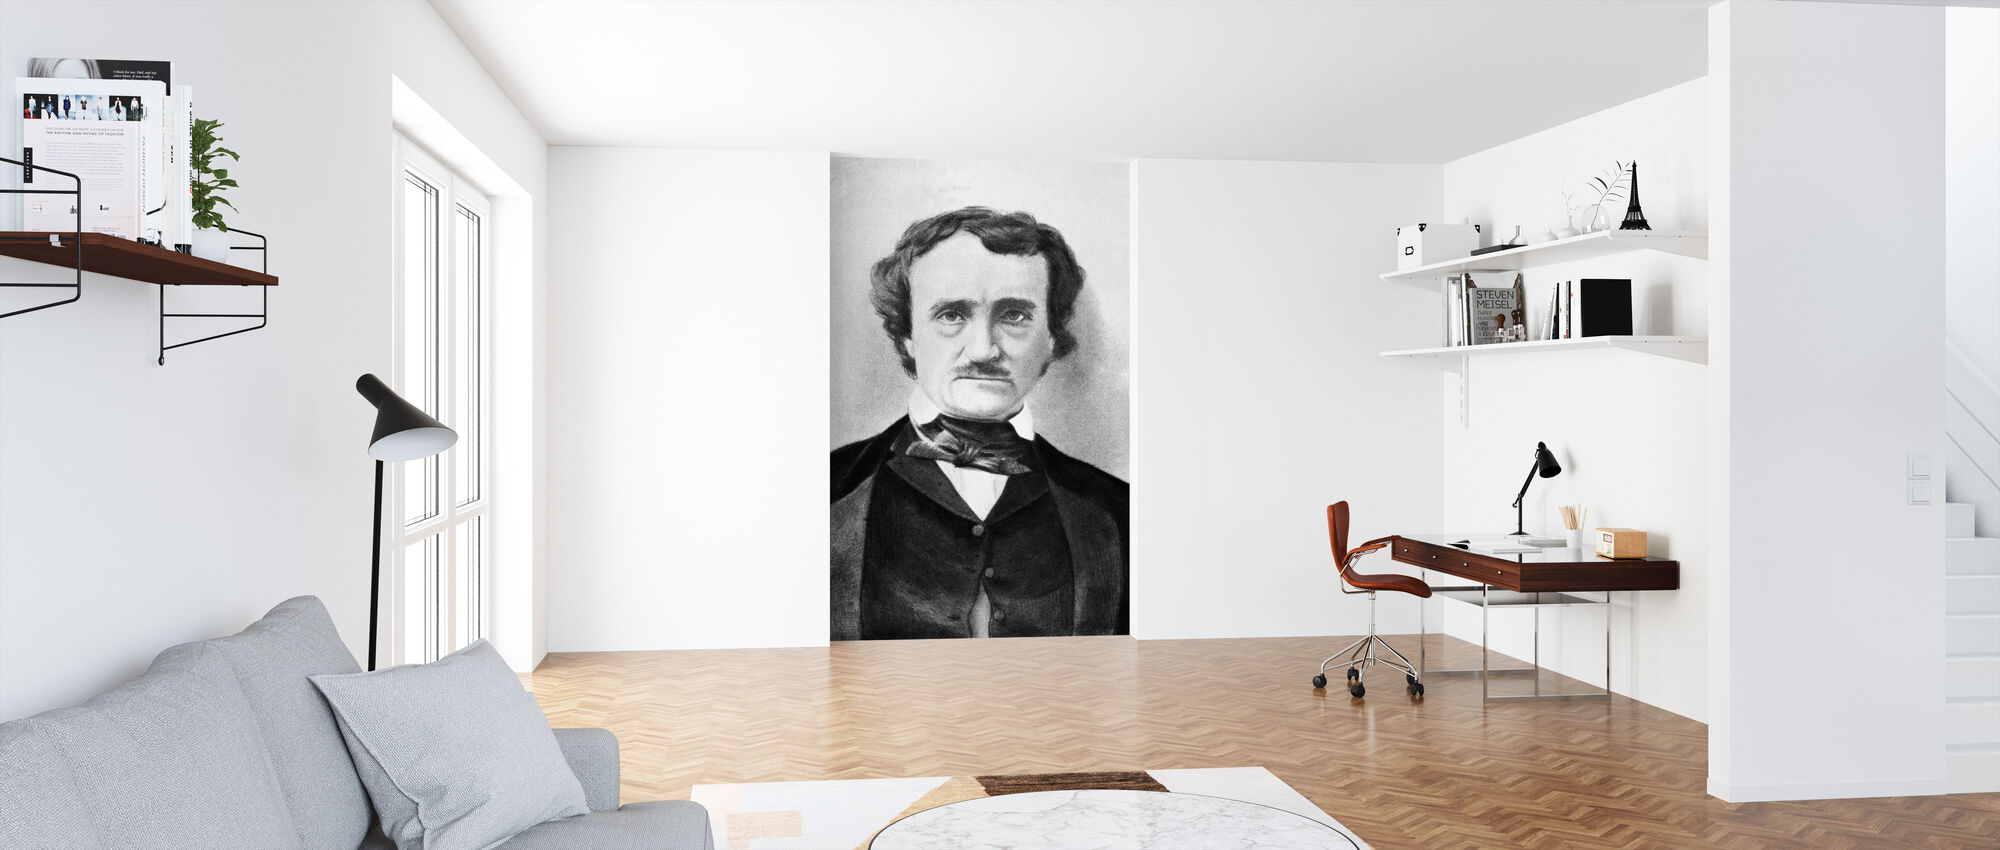 Edgar Allan Poe - Wallpaper - Office